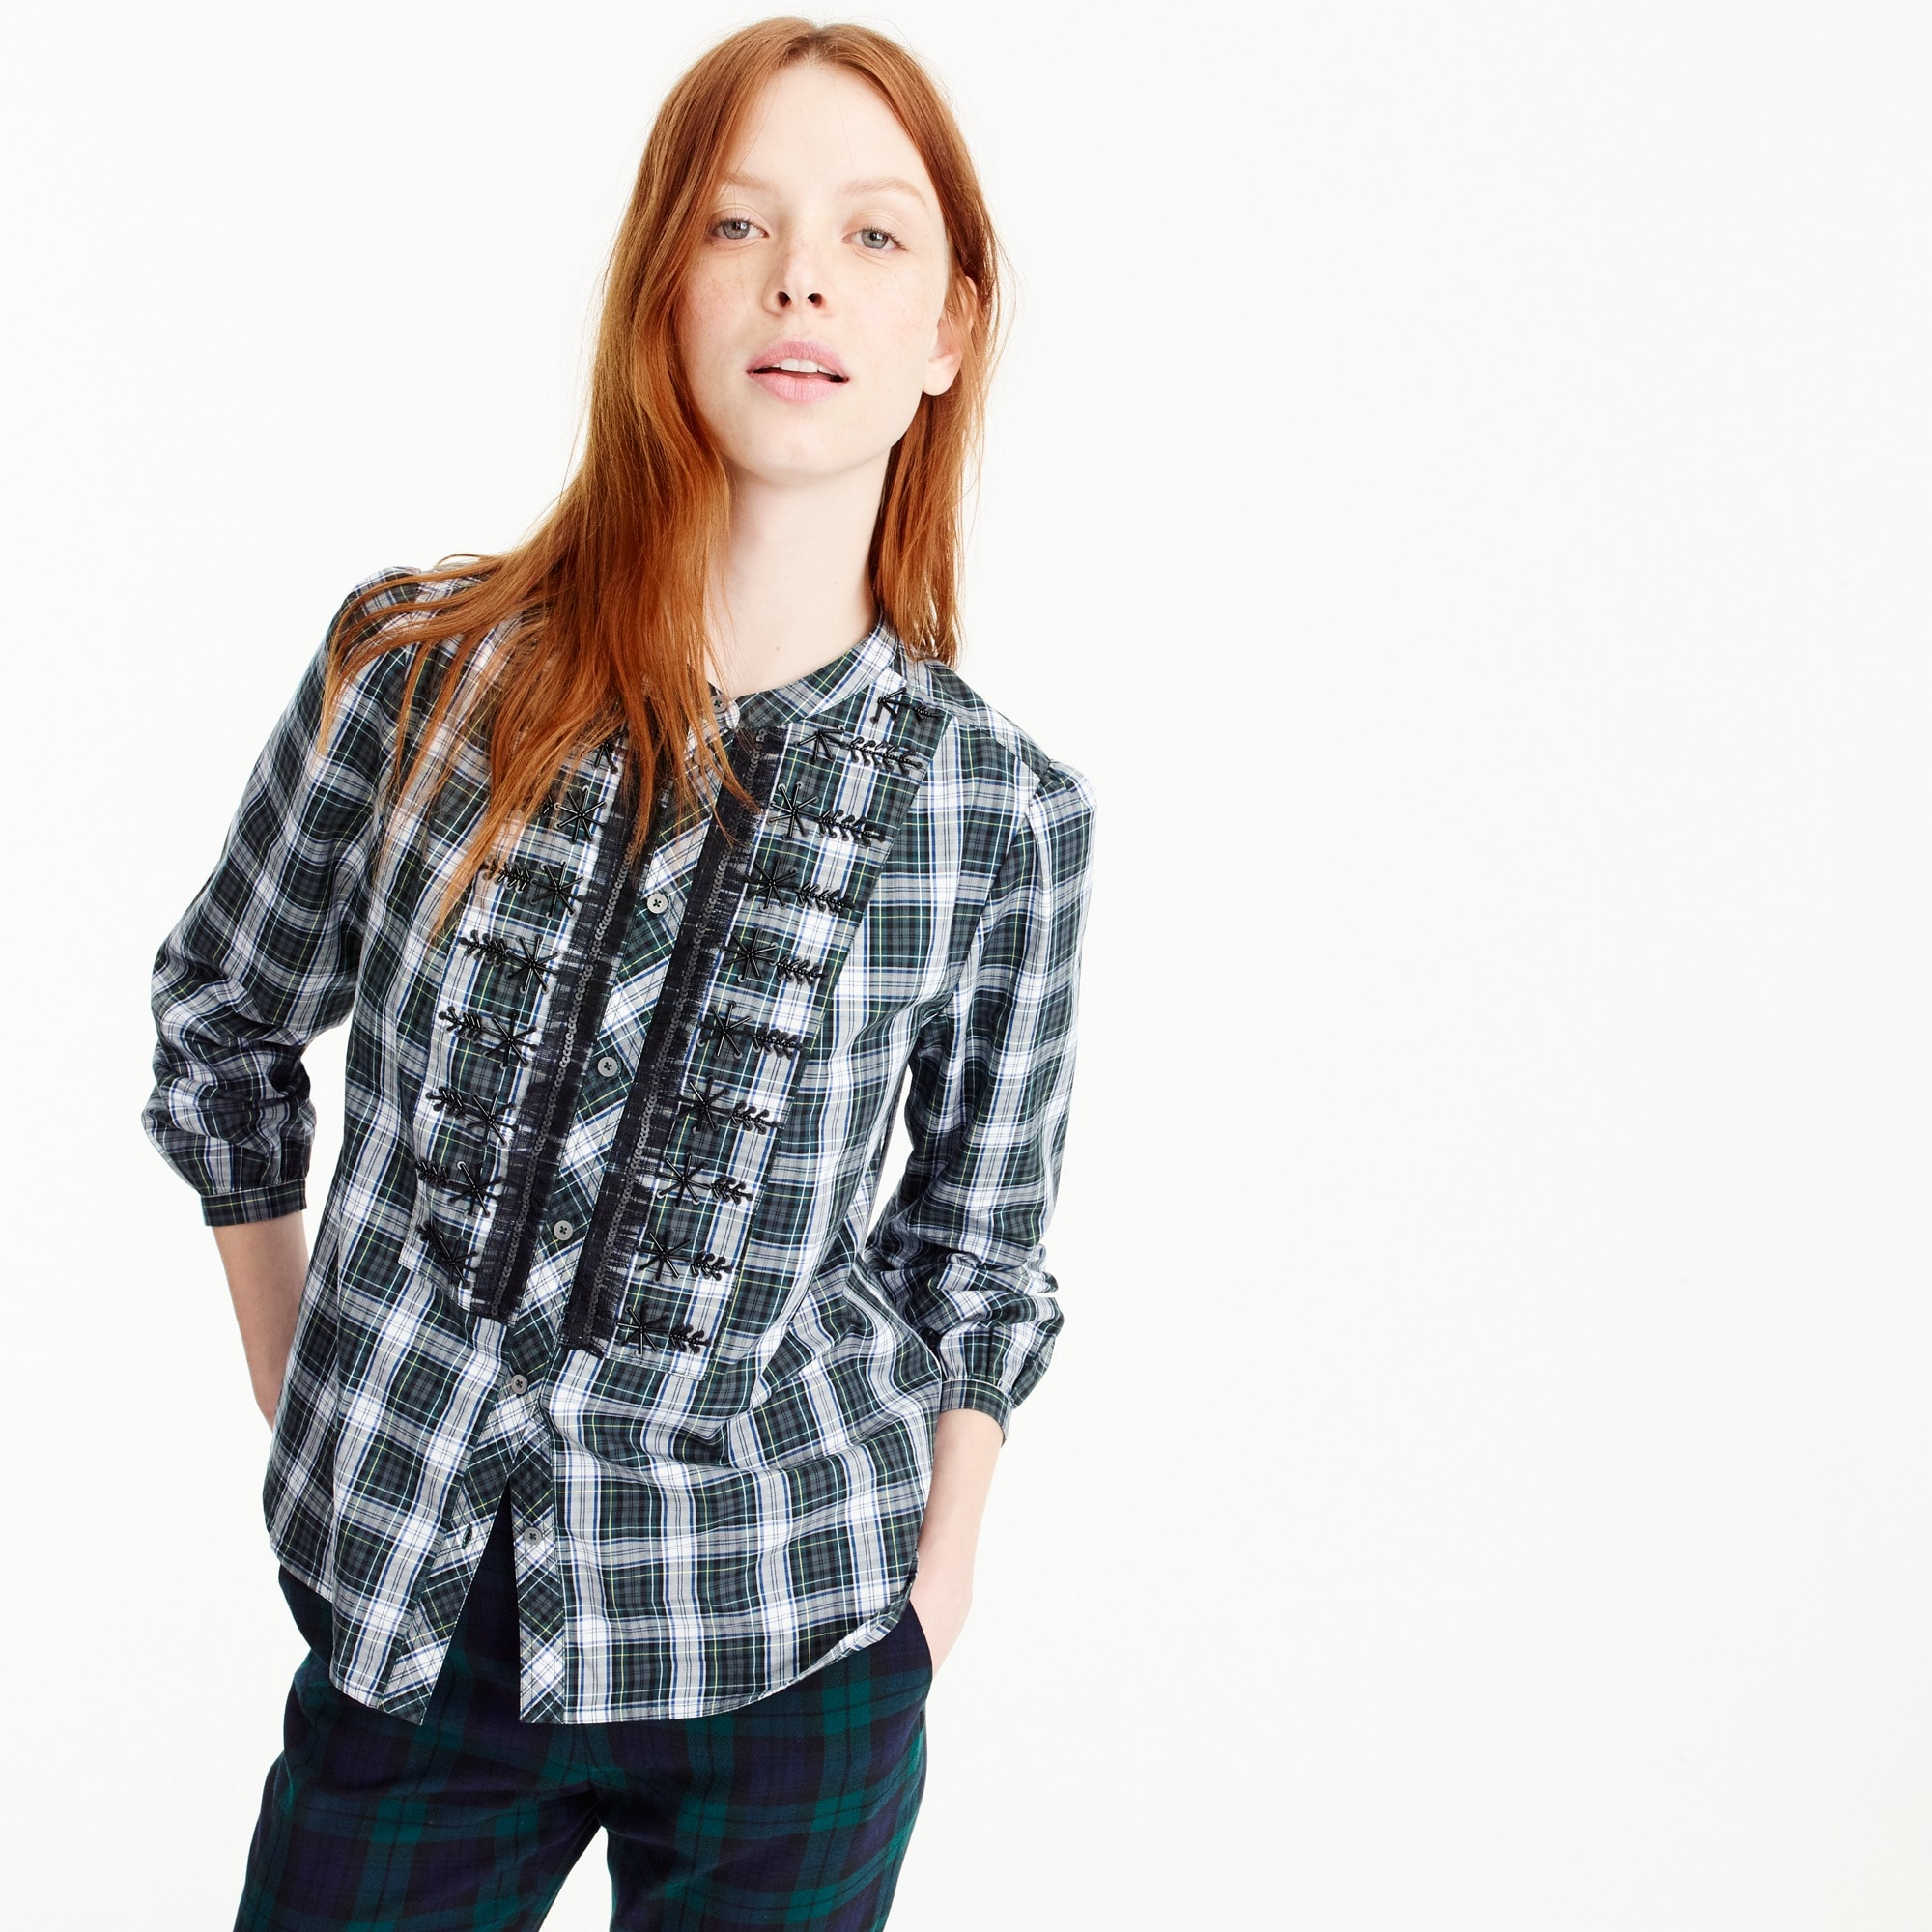 Image 1 for Tall embellished button-up shirt in forest tartan